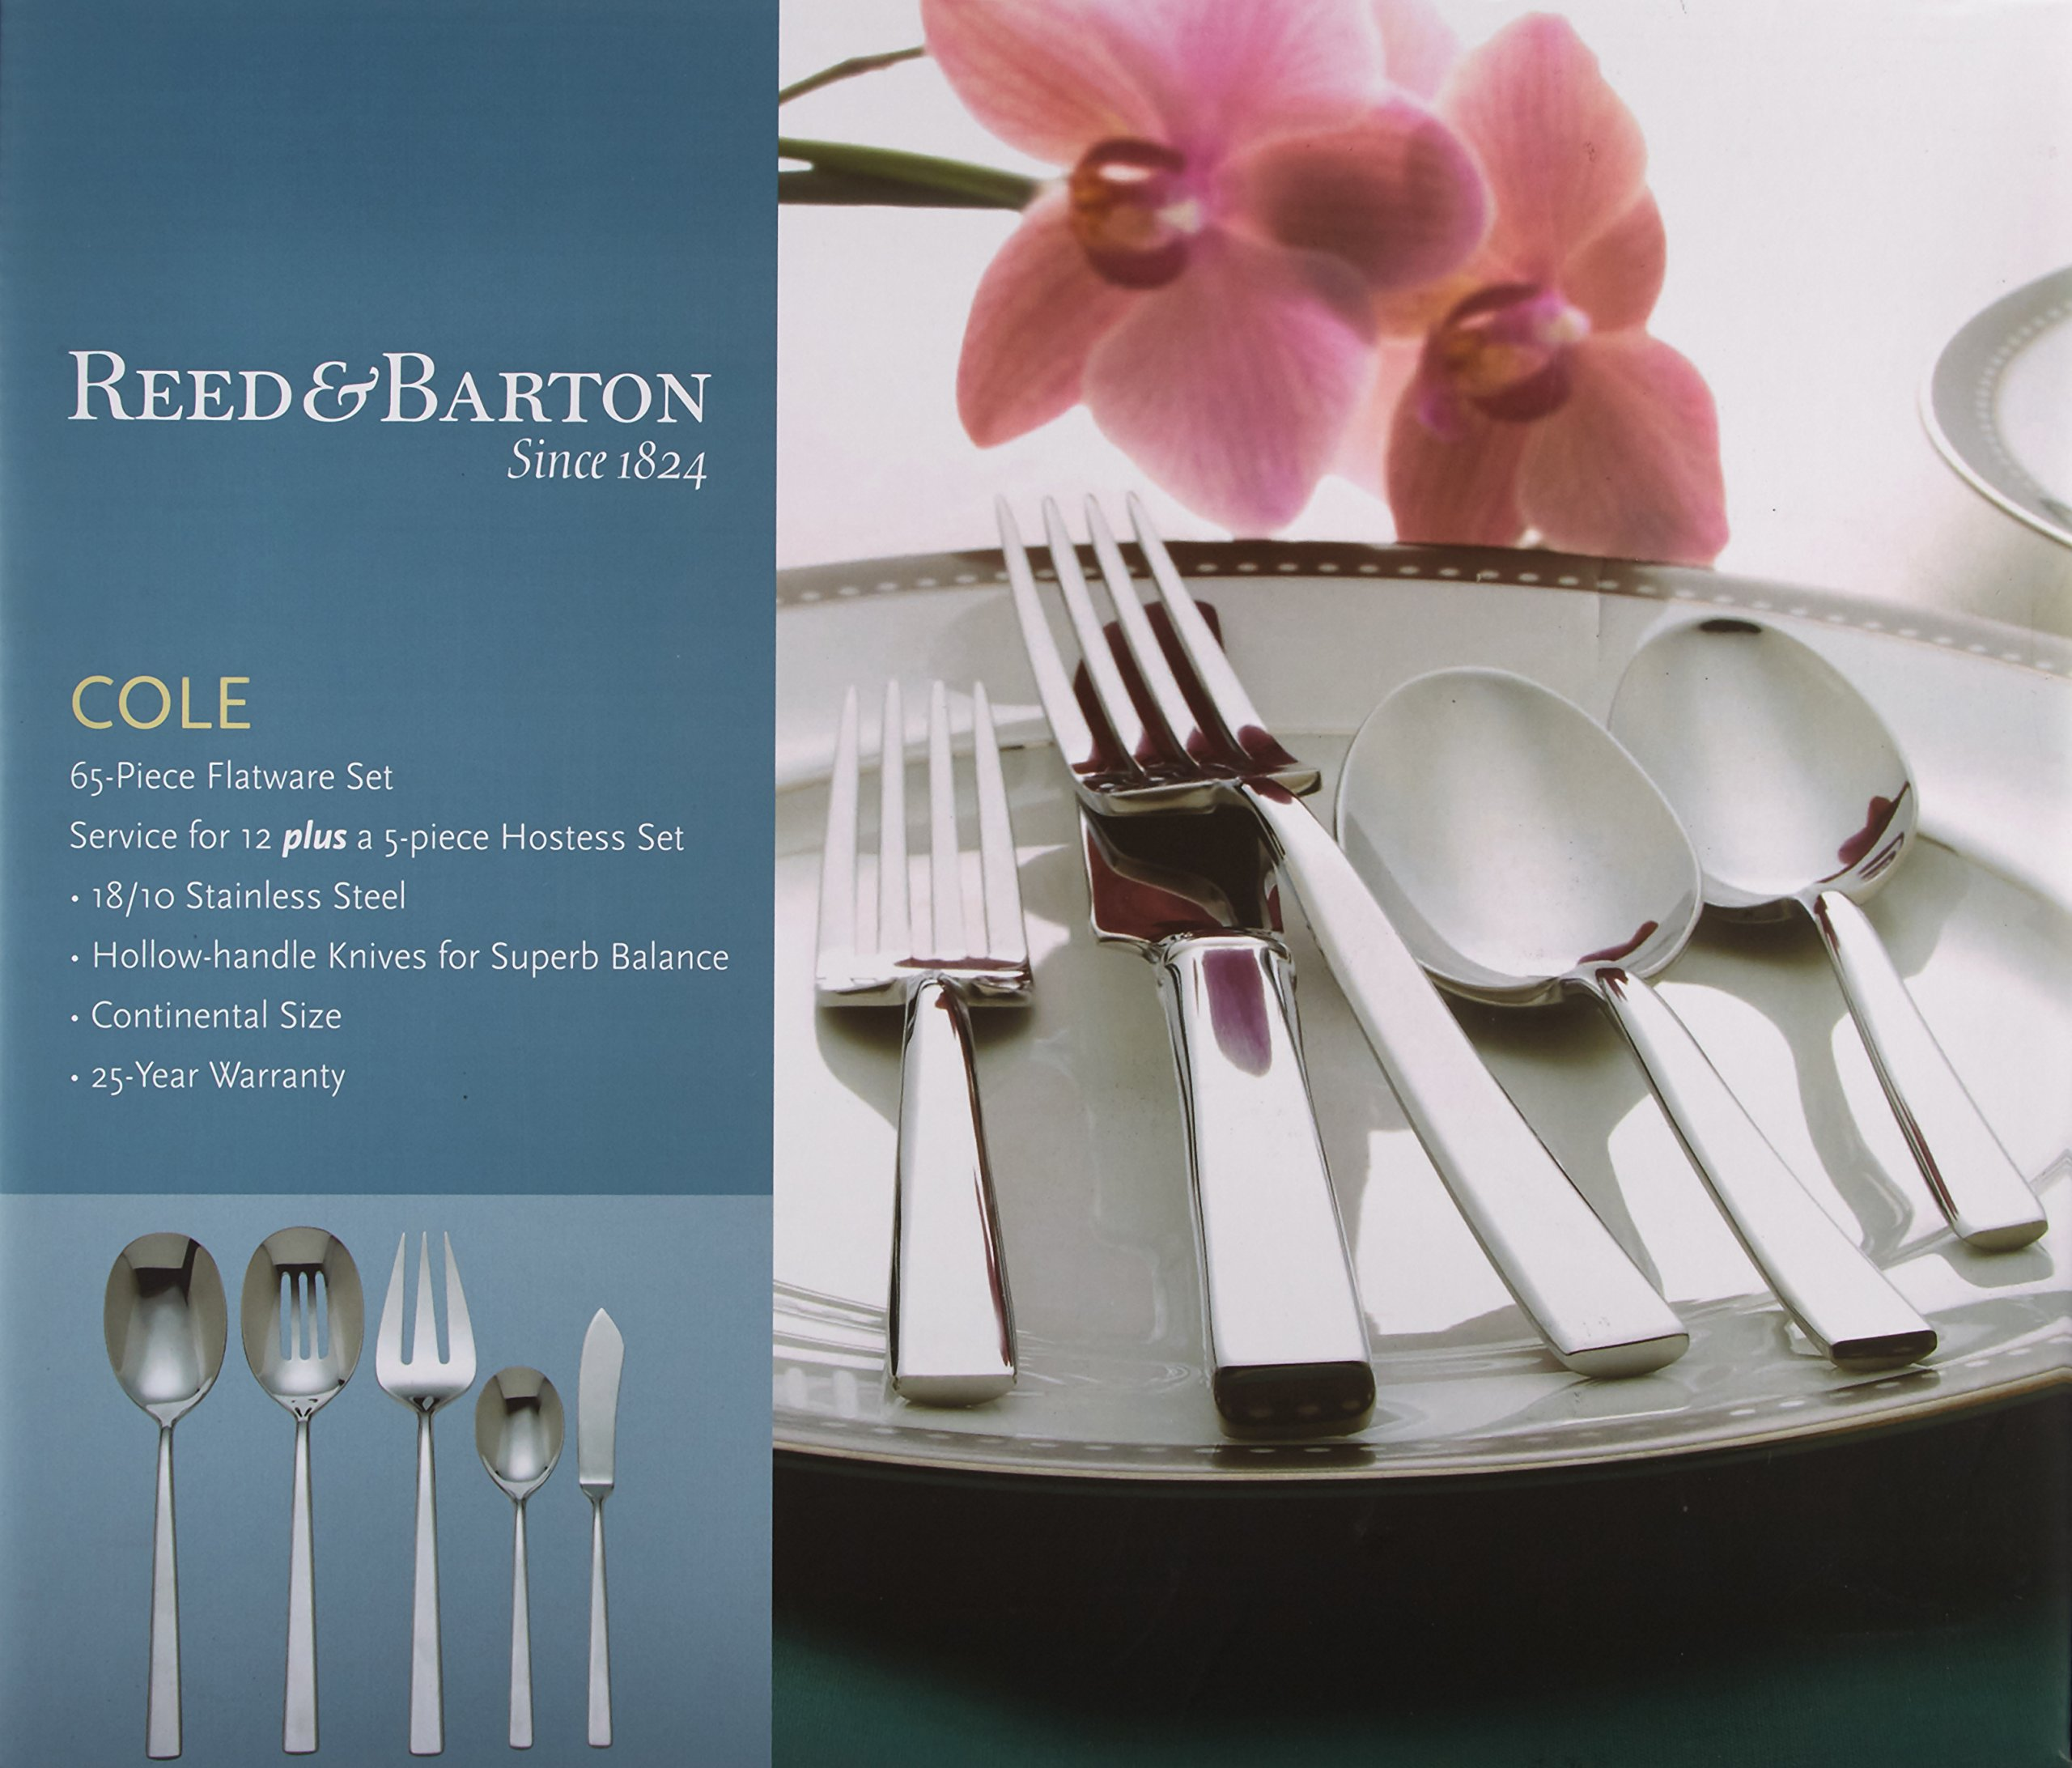 Reed & Barton Cole 18/10 Stainless Steel 65-Piece Set by Reed & Barton (Image #2)